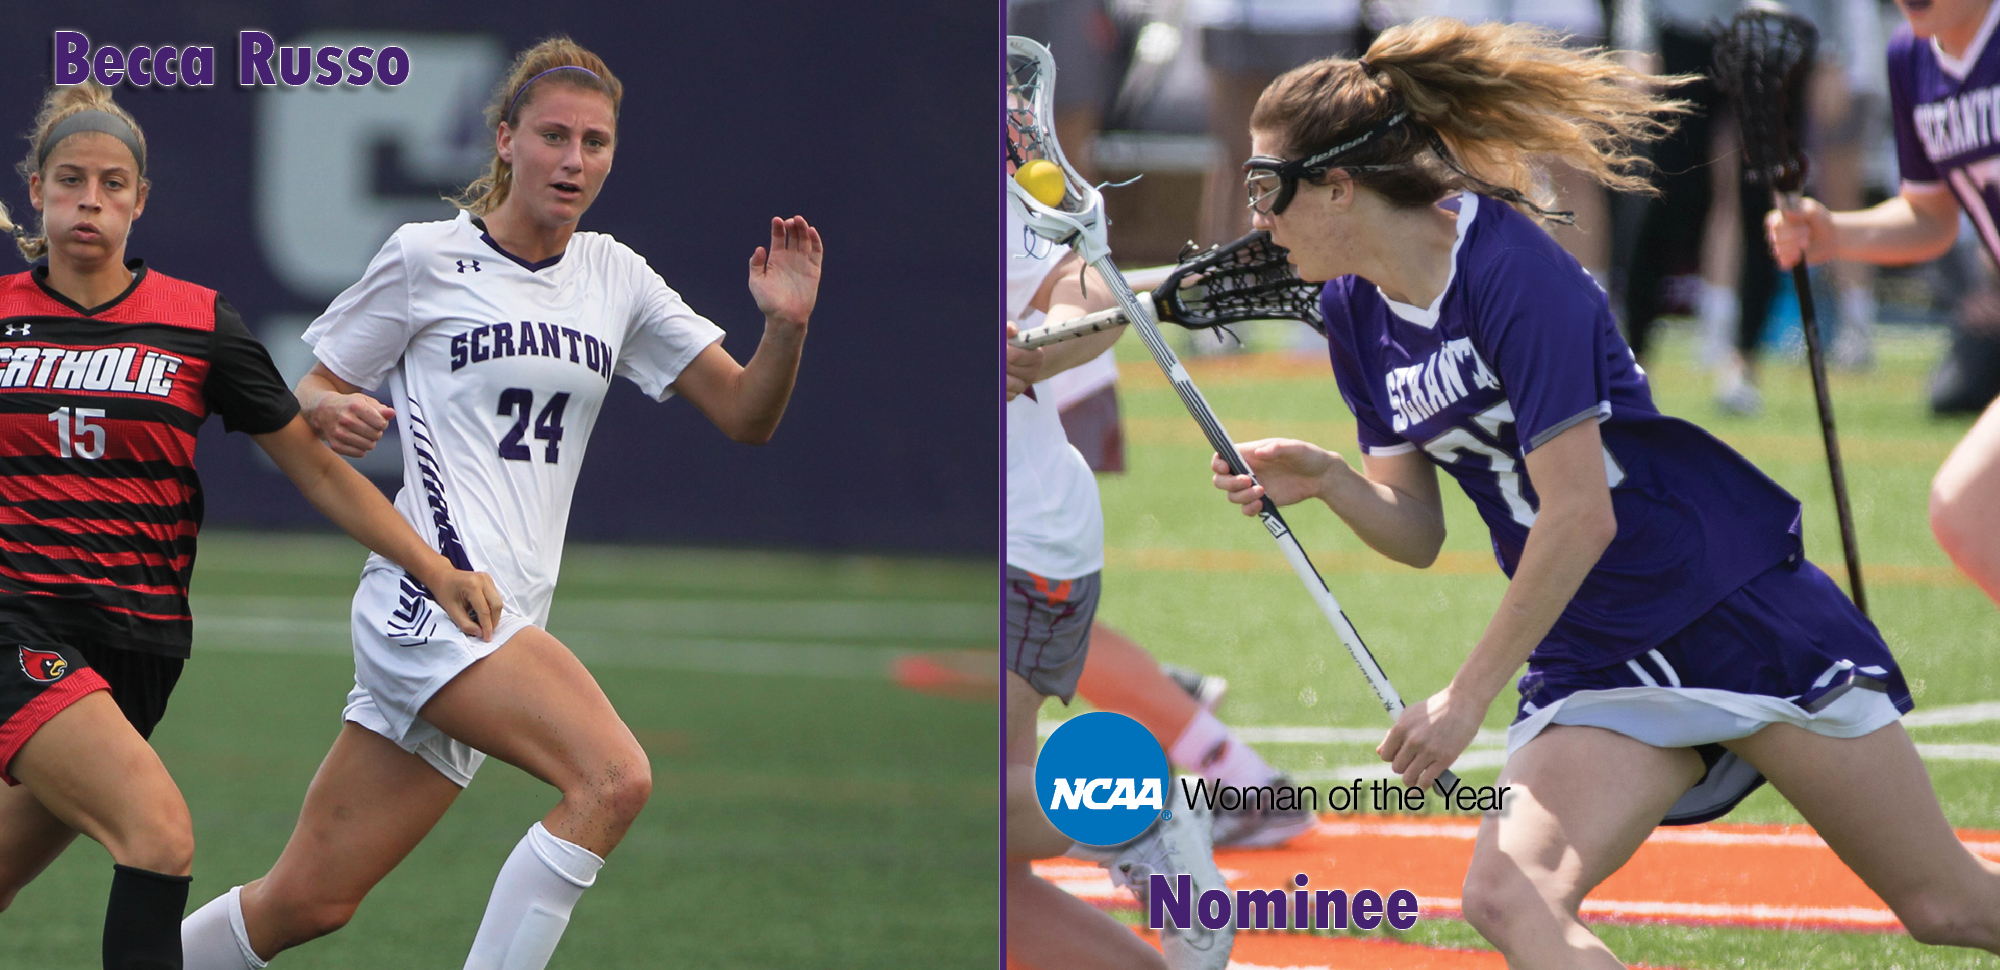 Rebecca Russo '20 Nominated for NCAA Woman of the Year Award